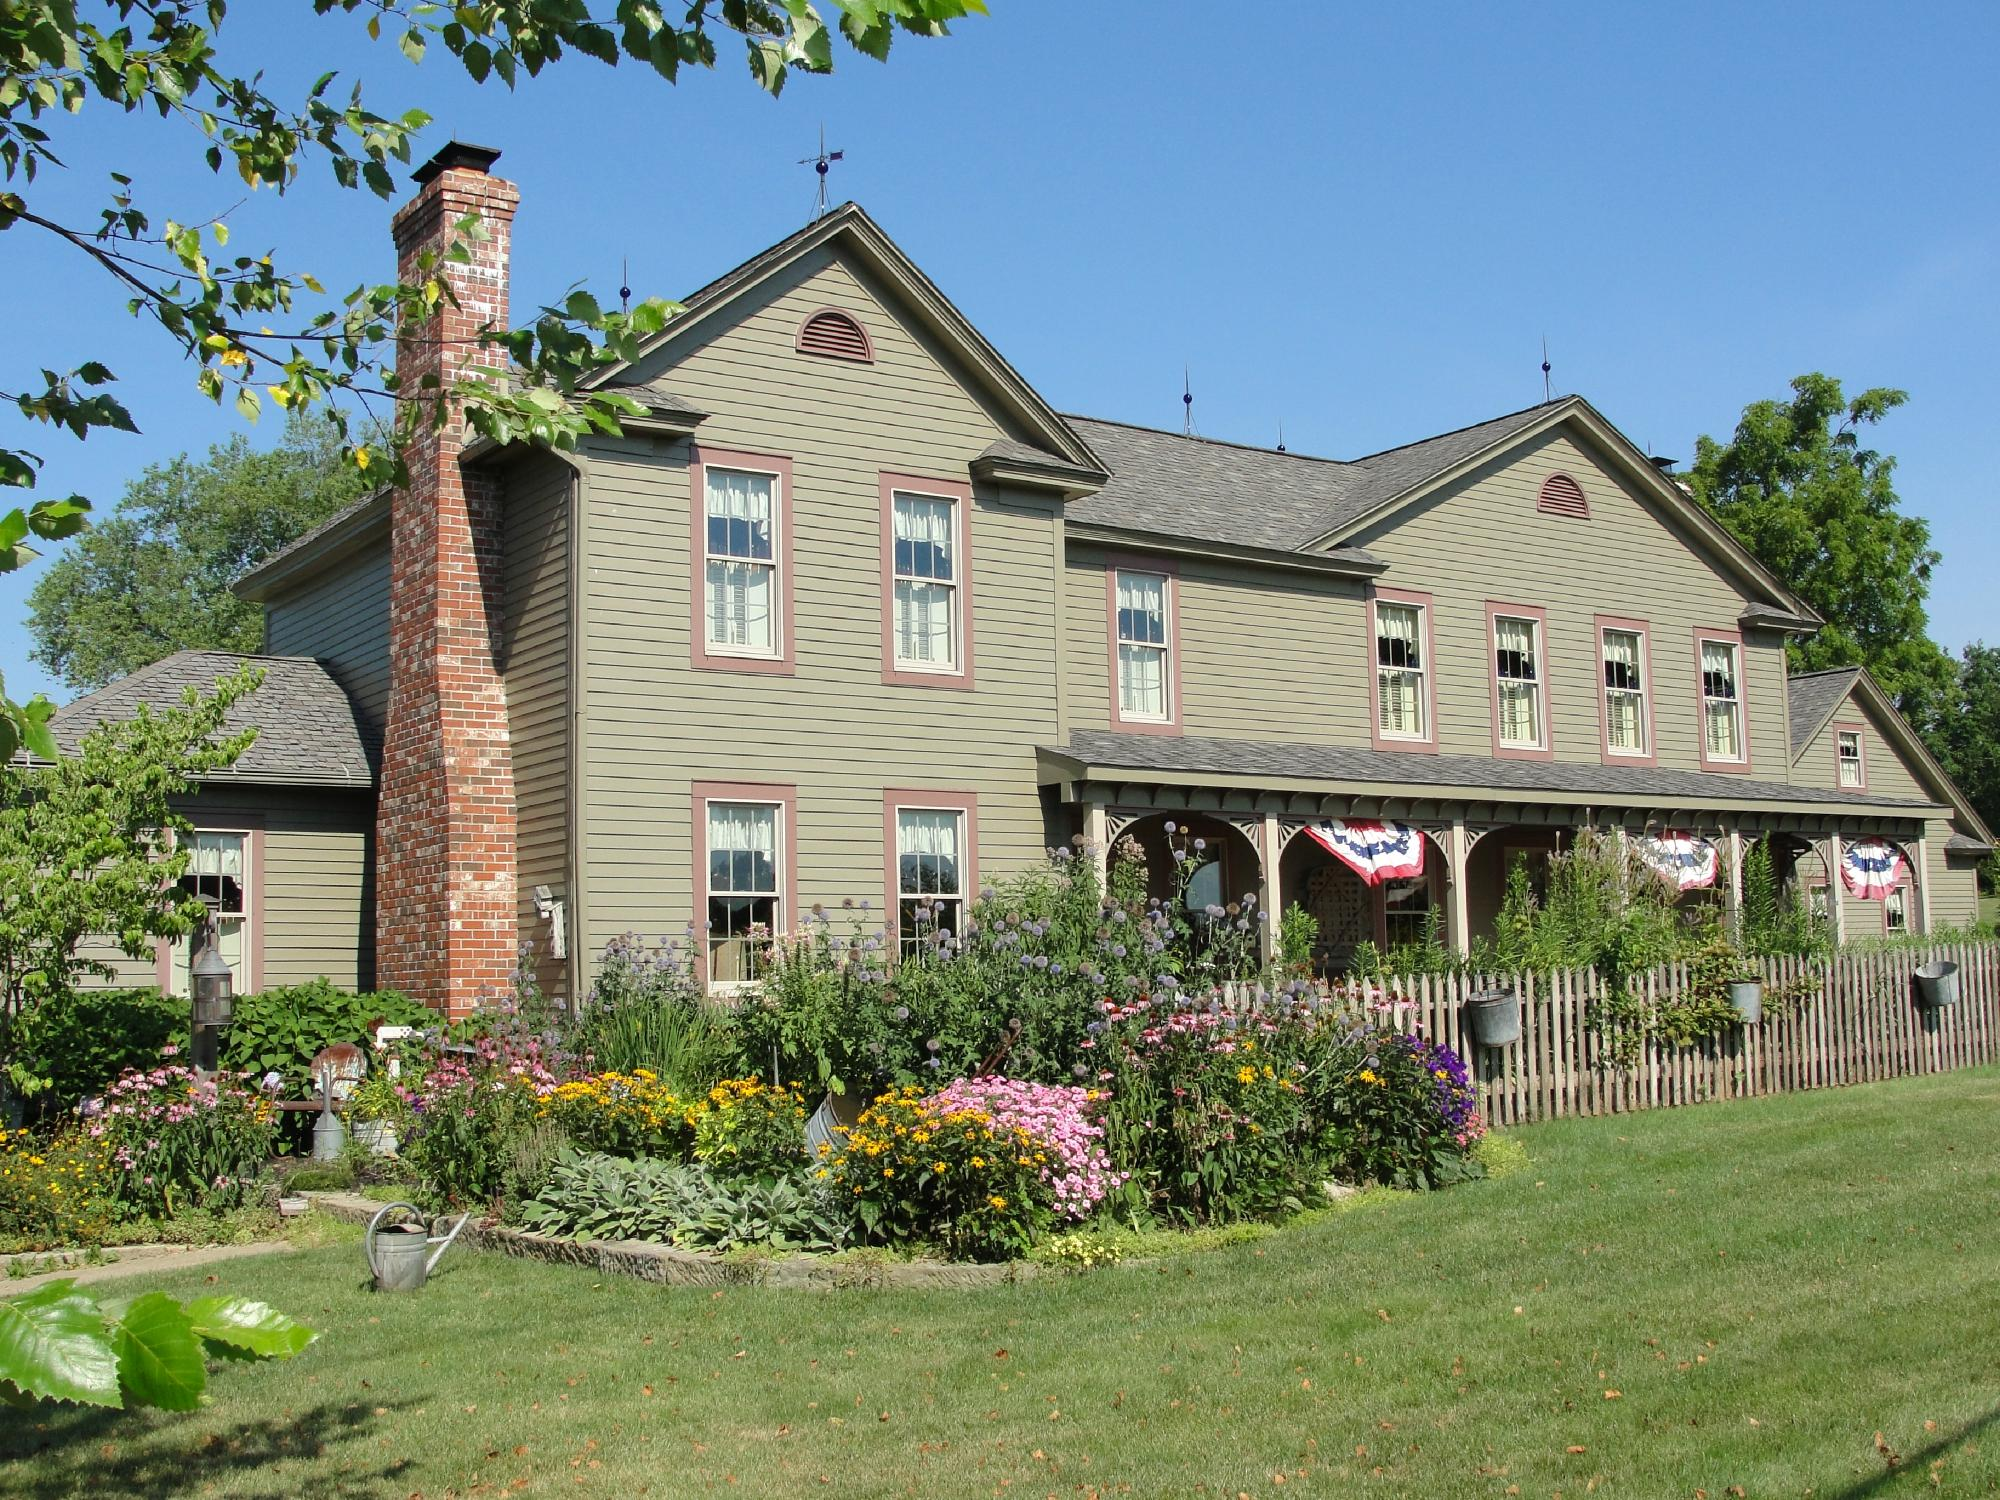 The Whimsical Pig Bed and Breakfast at Wolf Creek